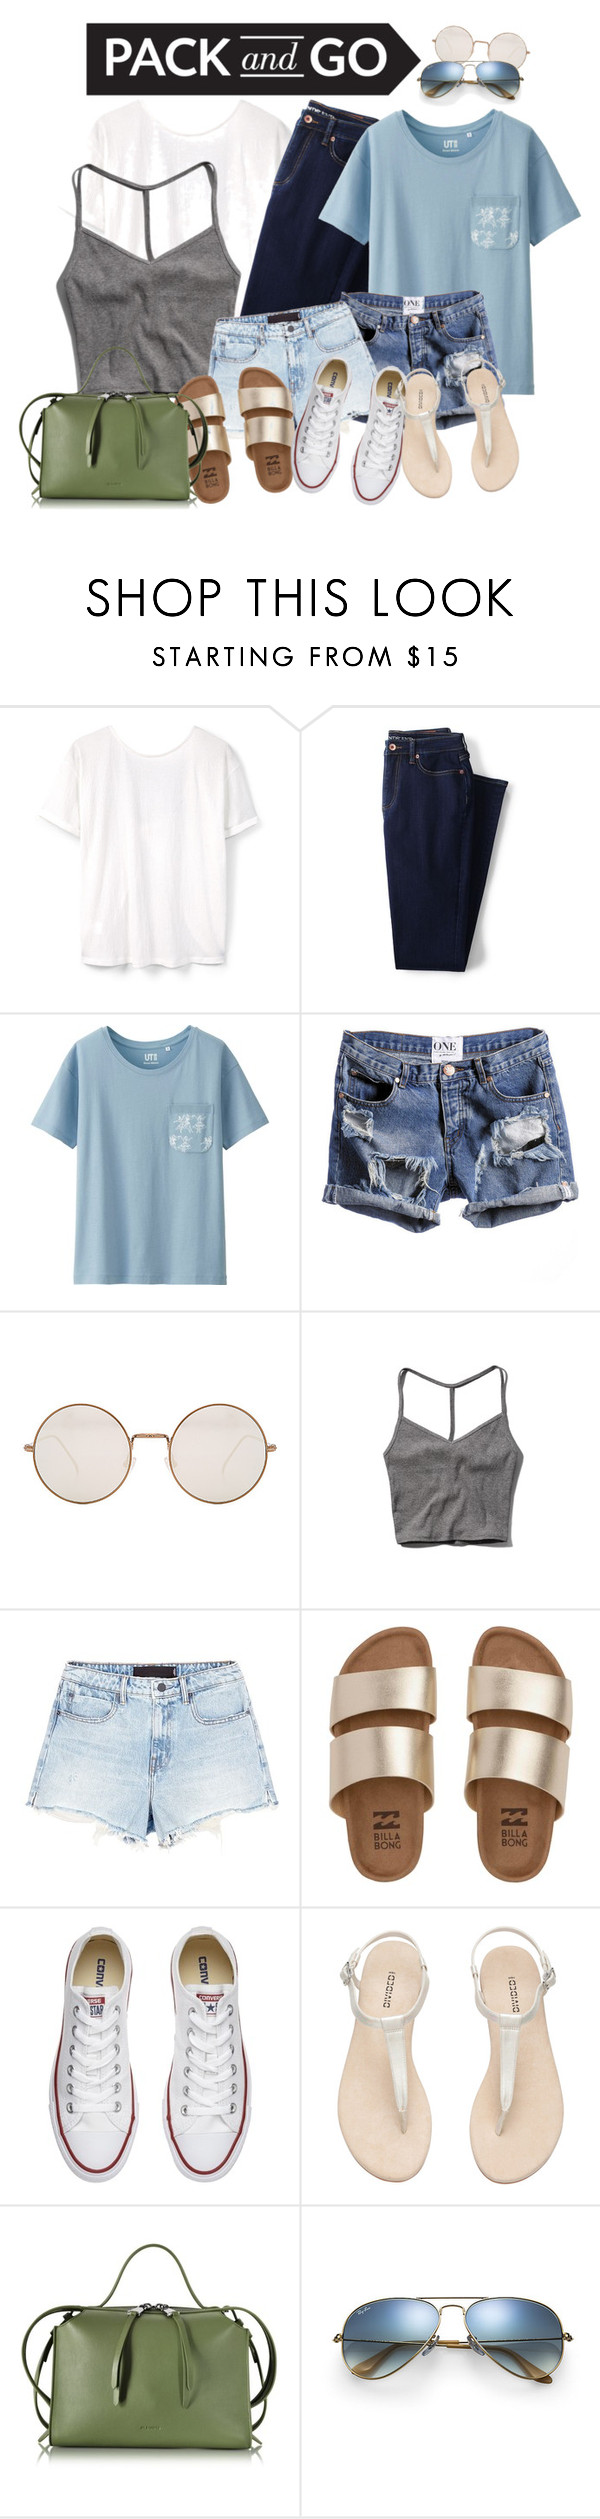 """""""rio"""" by kapreece on Polyvore featuring MANGO, Lands' End, Uniqlo, Illesteva, Abercrombie & Fitch, Alexander Wang, Billabong, Converse, Jil Sander and Ray-Ban"""